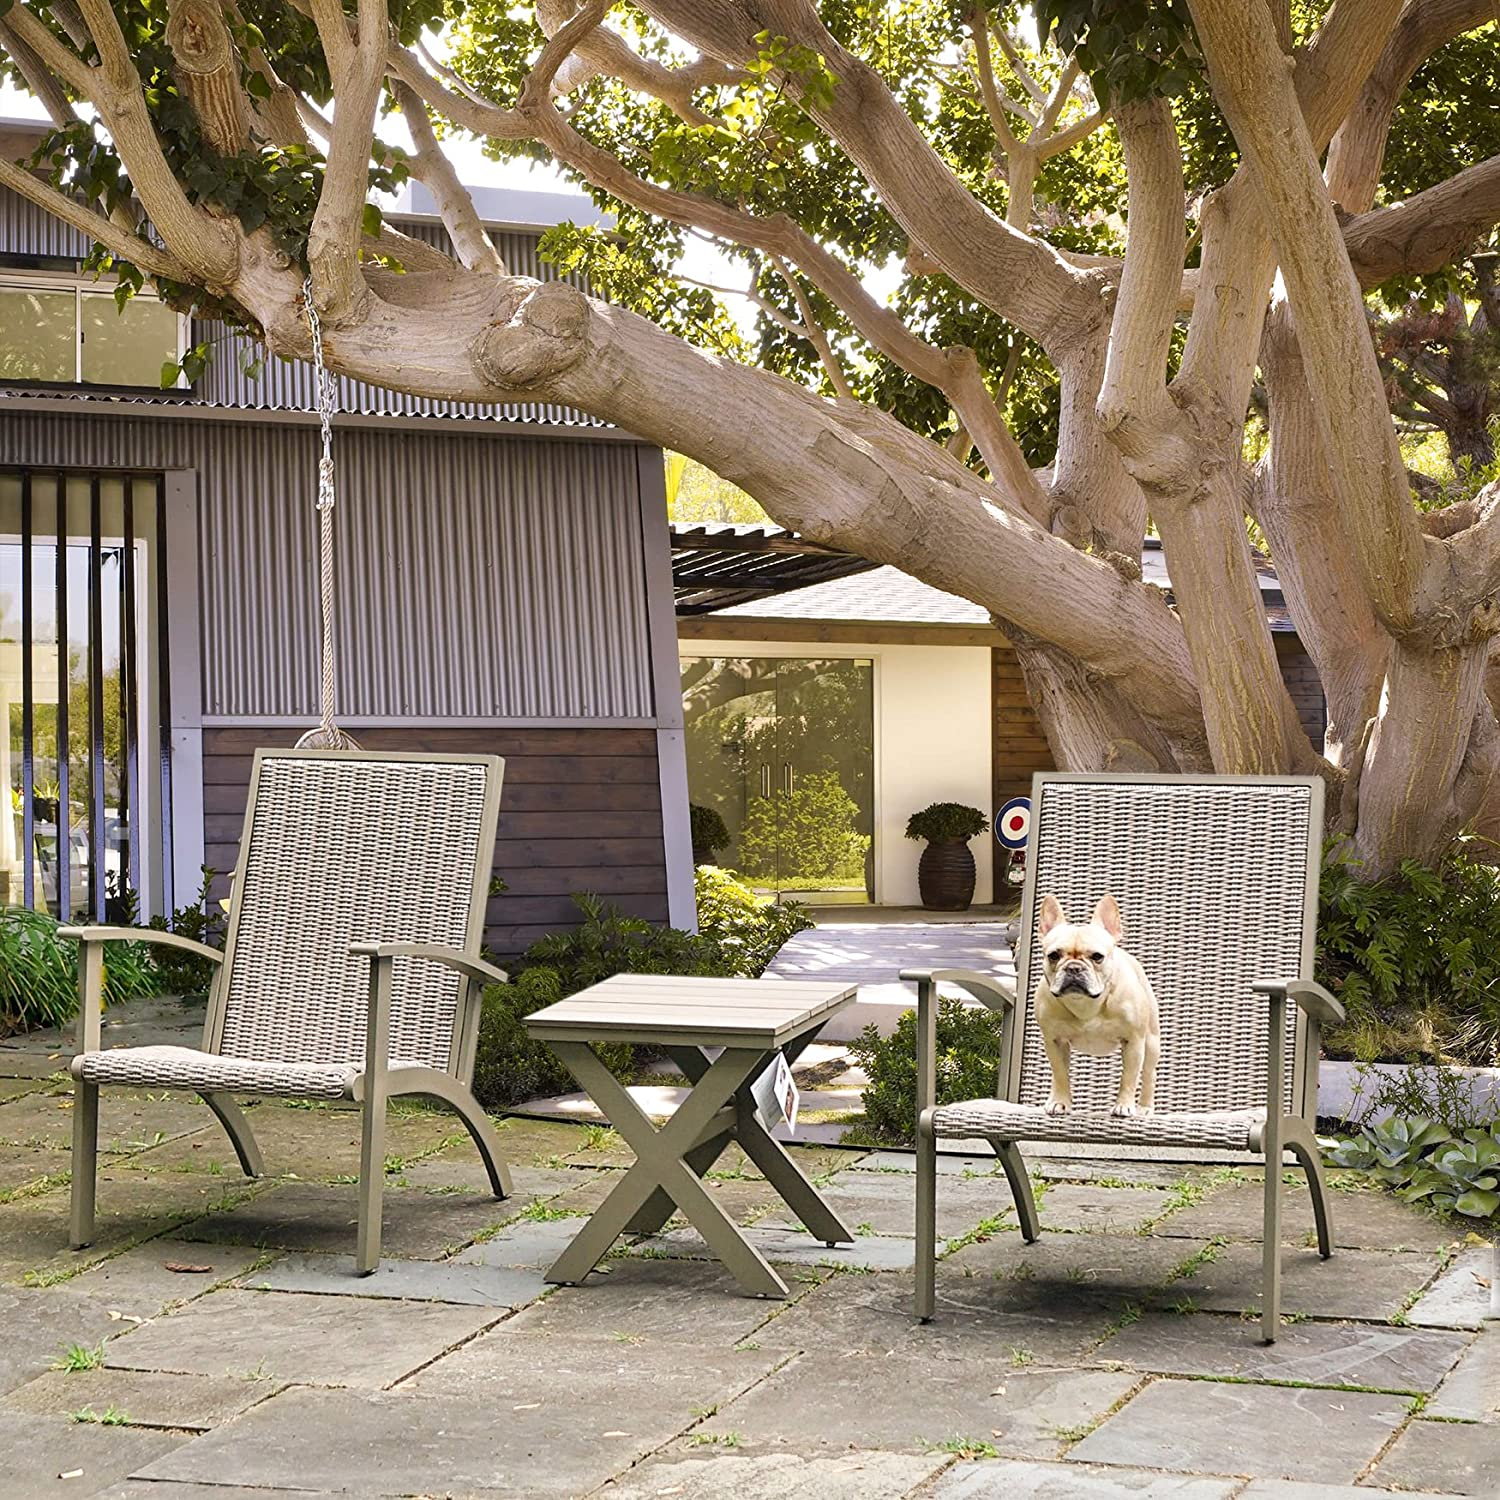 Grand Patio 3-Piece Wicker Conversation Set, Aluminium Outdoor Chat Set, Weather Resistant Patio Furniture Set, Grey